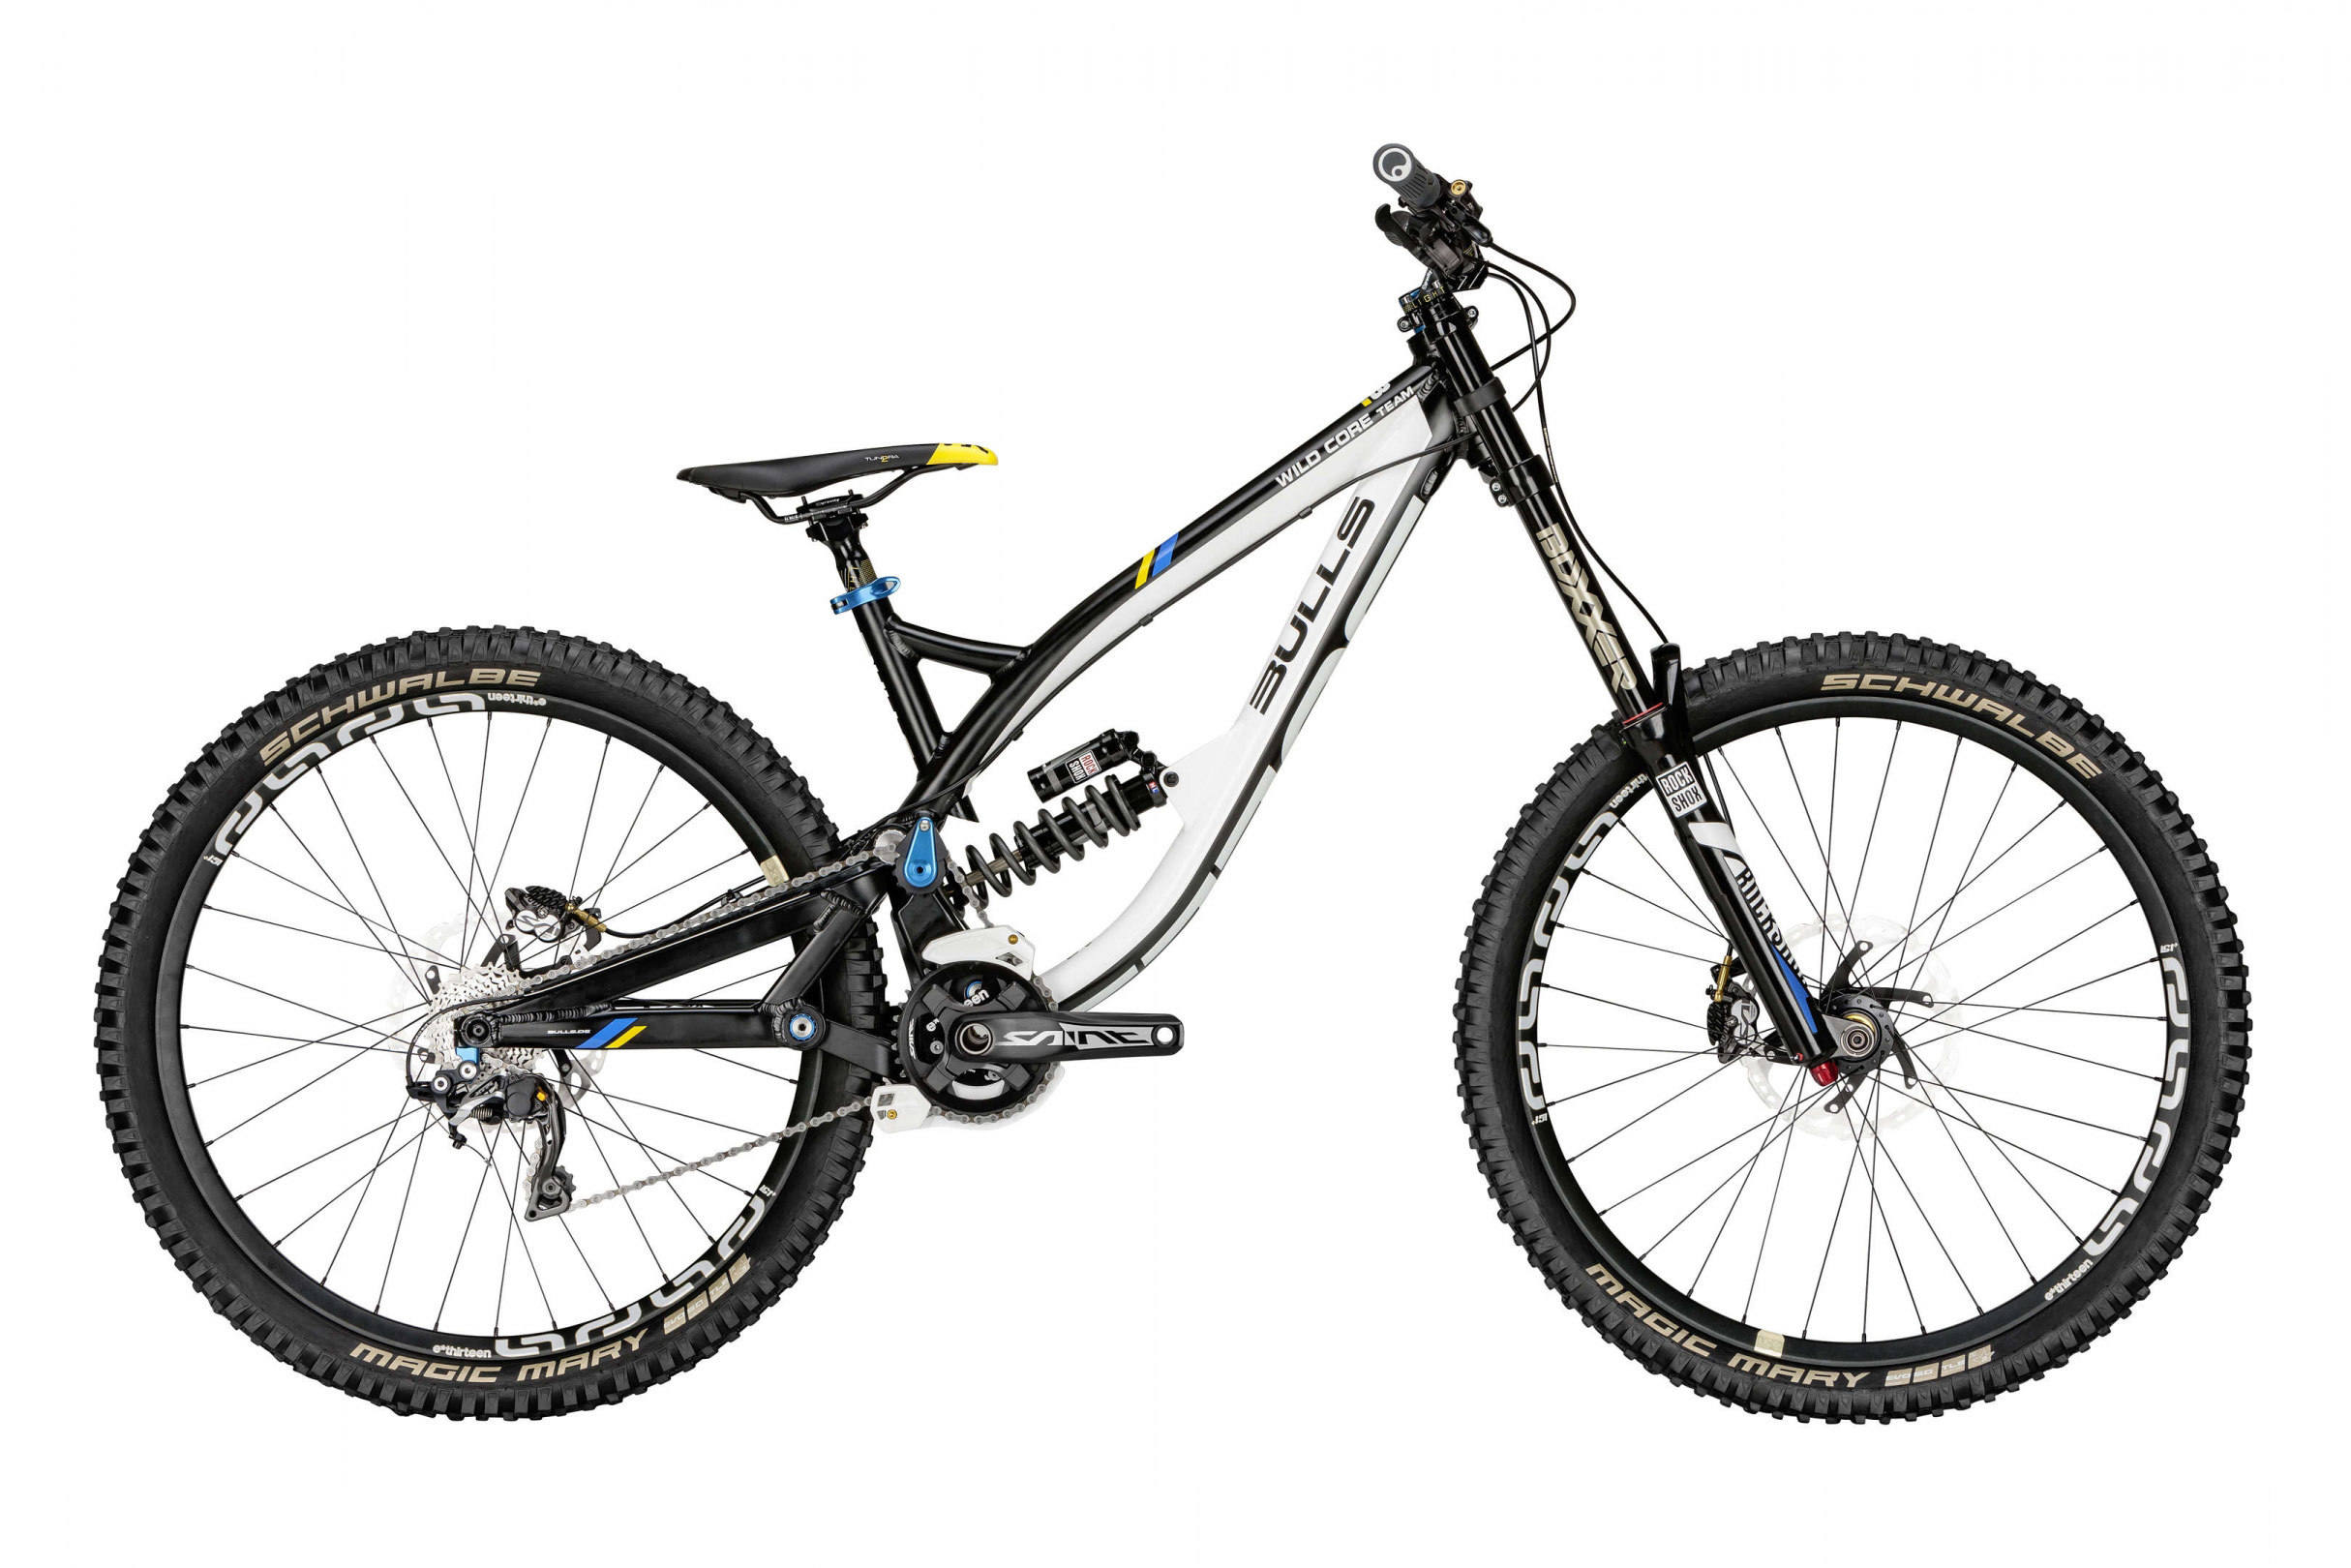 mountain bike bulls wild core team shimano xtr downhill gr. Black Bedroom Furniture Sets. Home Design Ideas